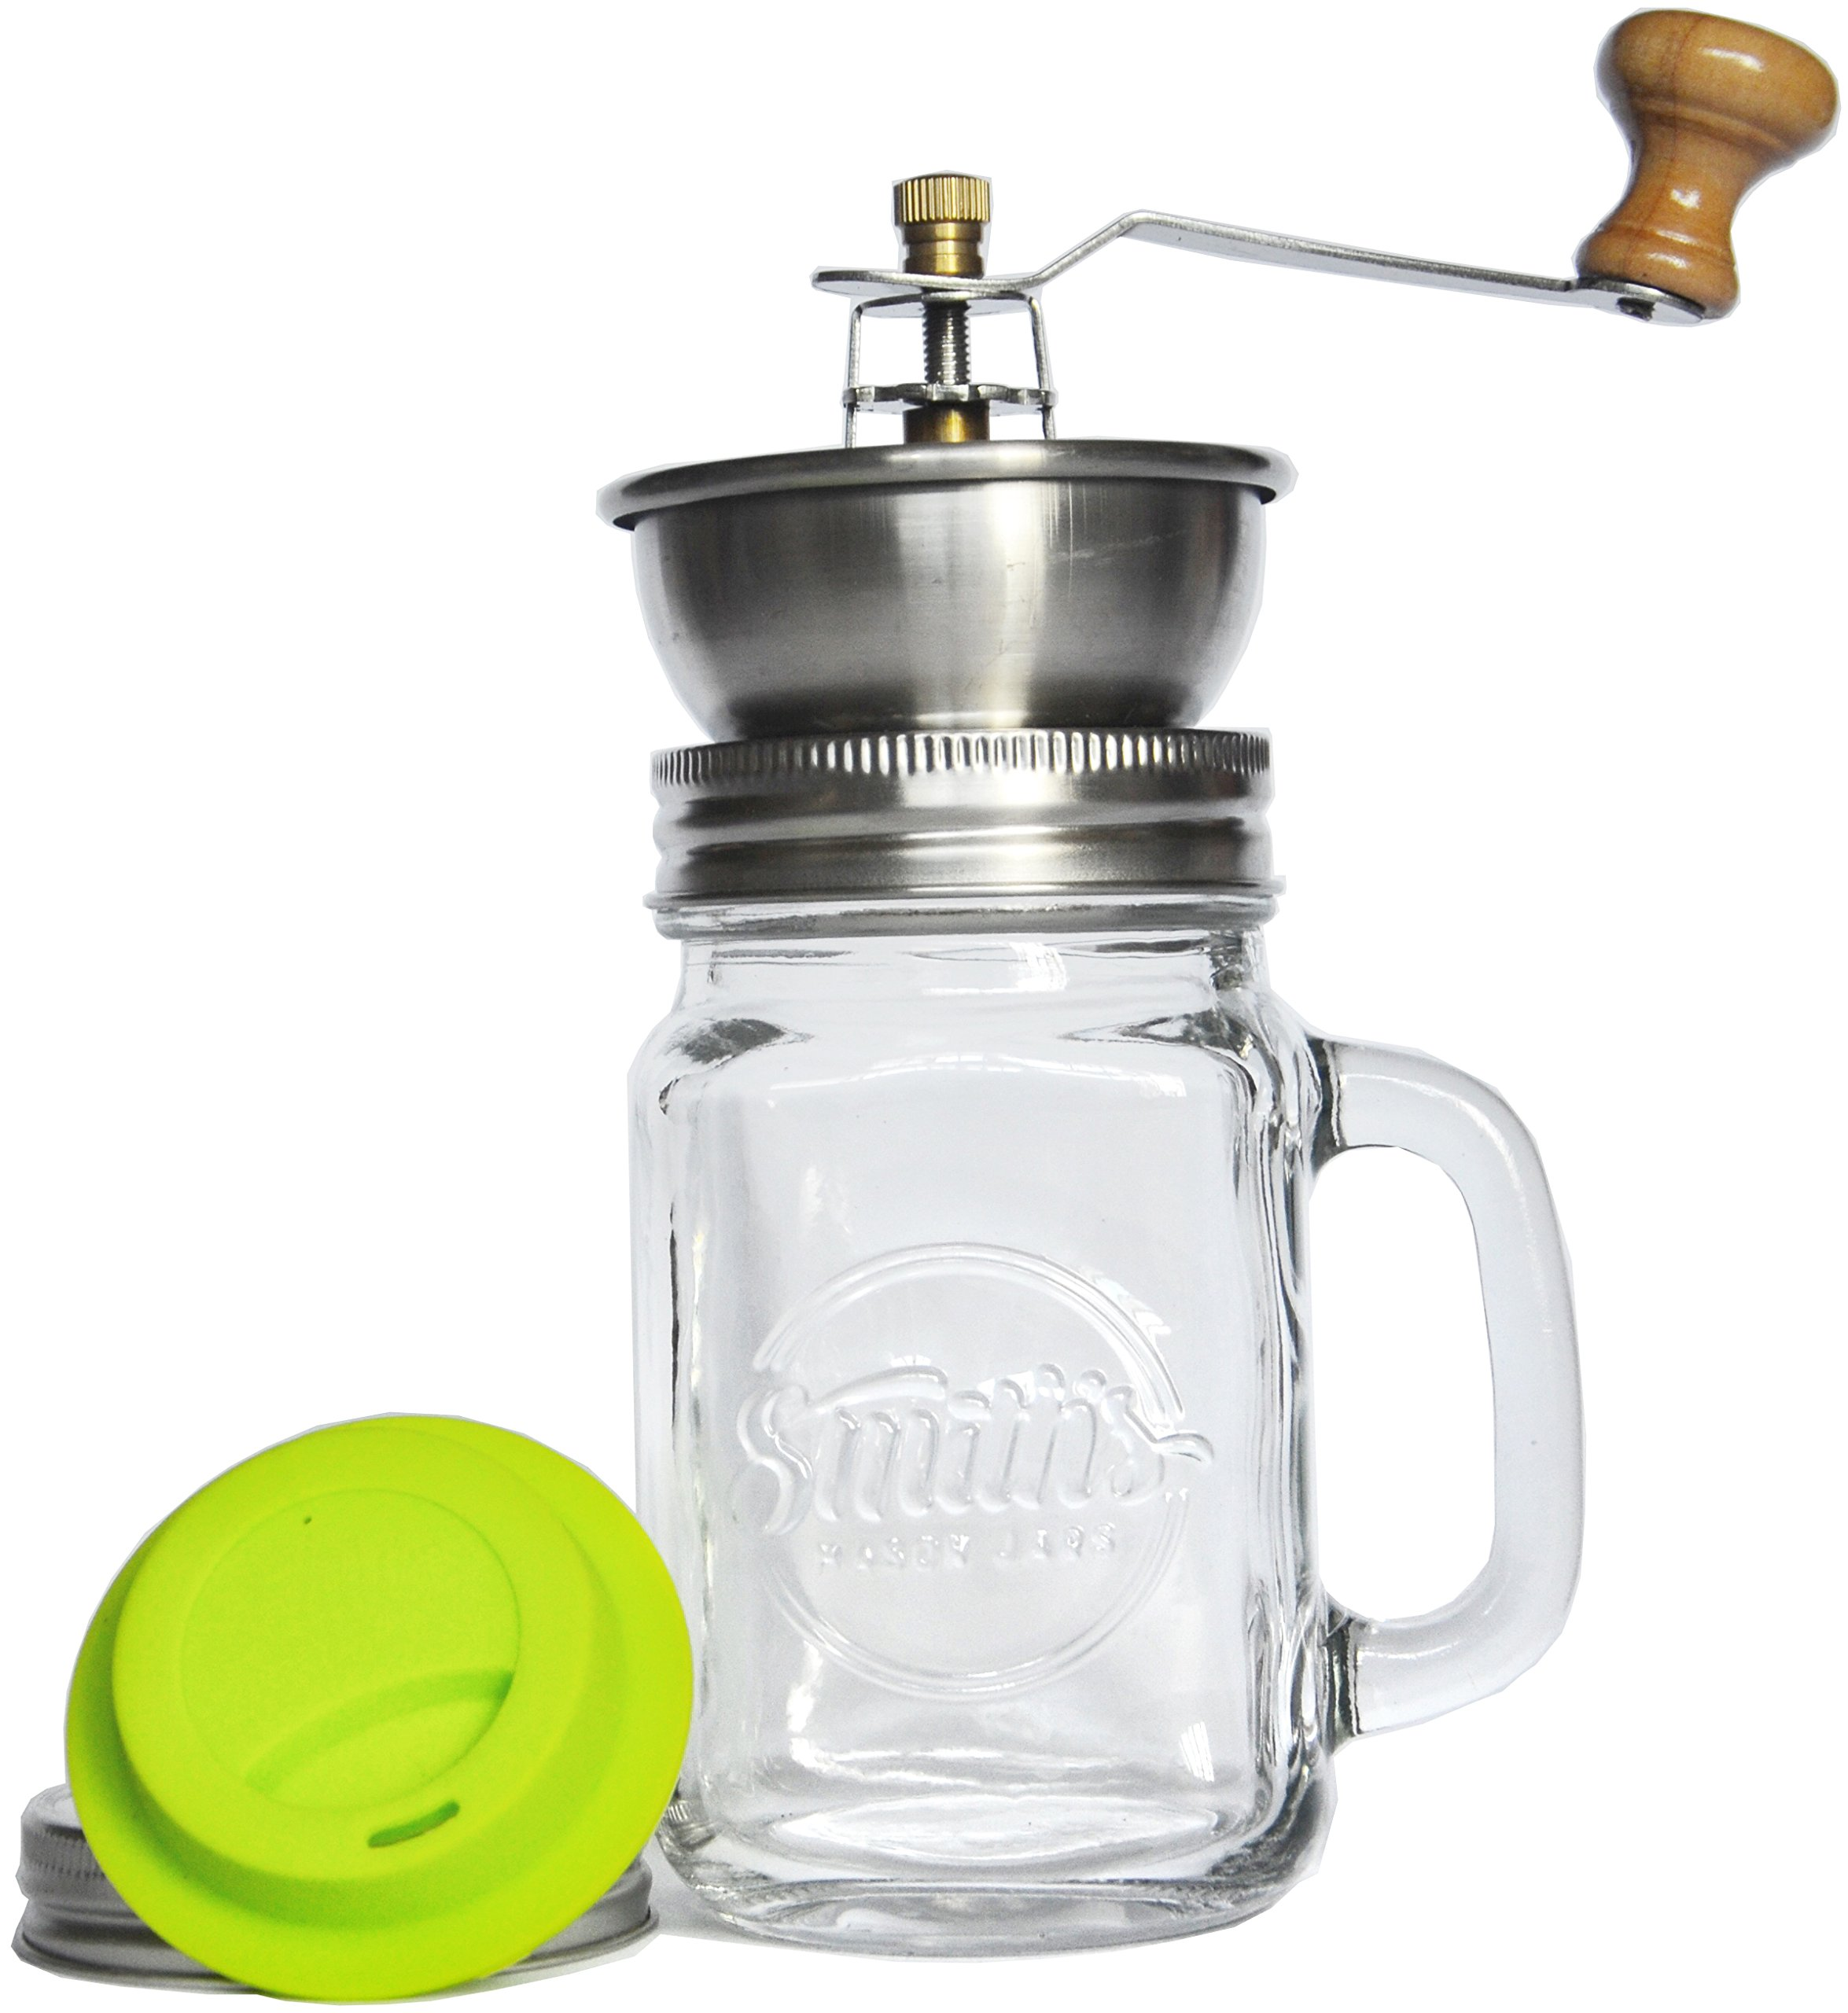 Smith's Mason Jar Coffee Mug with Ceramic Grinder with Silicone Drinking Lid - Amazing Manual Adjustable Coffee Grinder